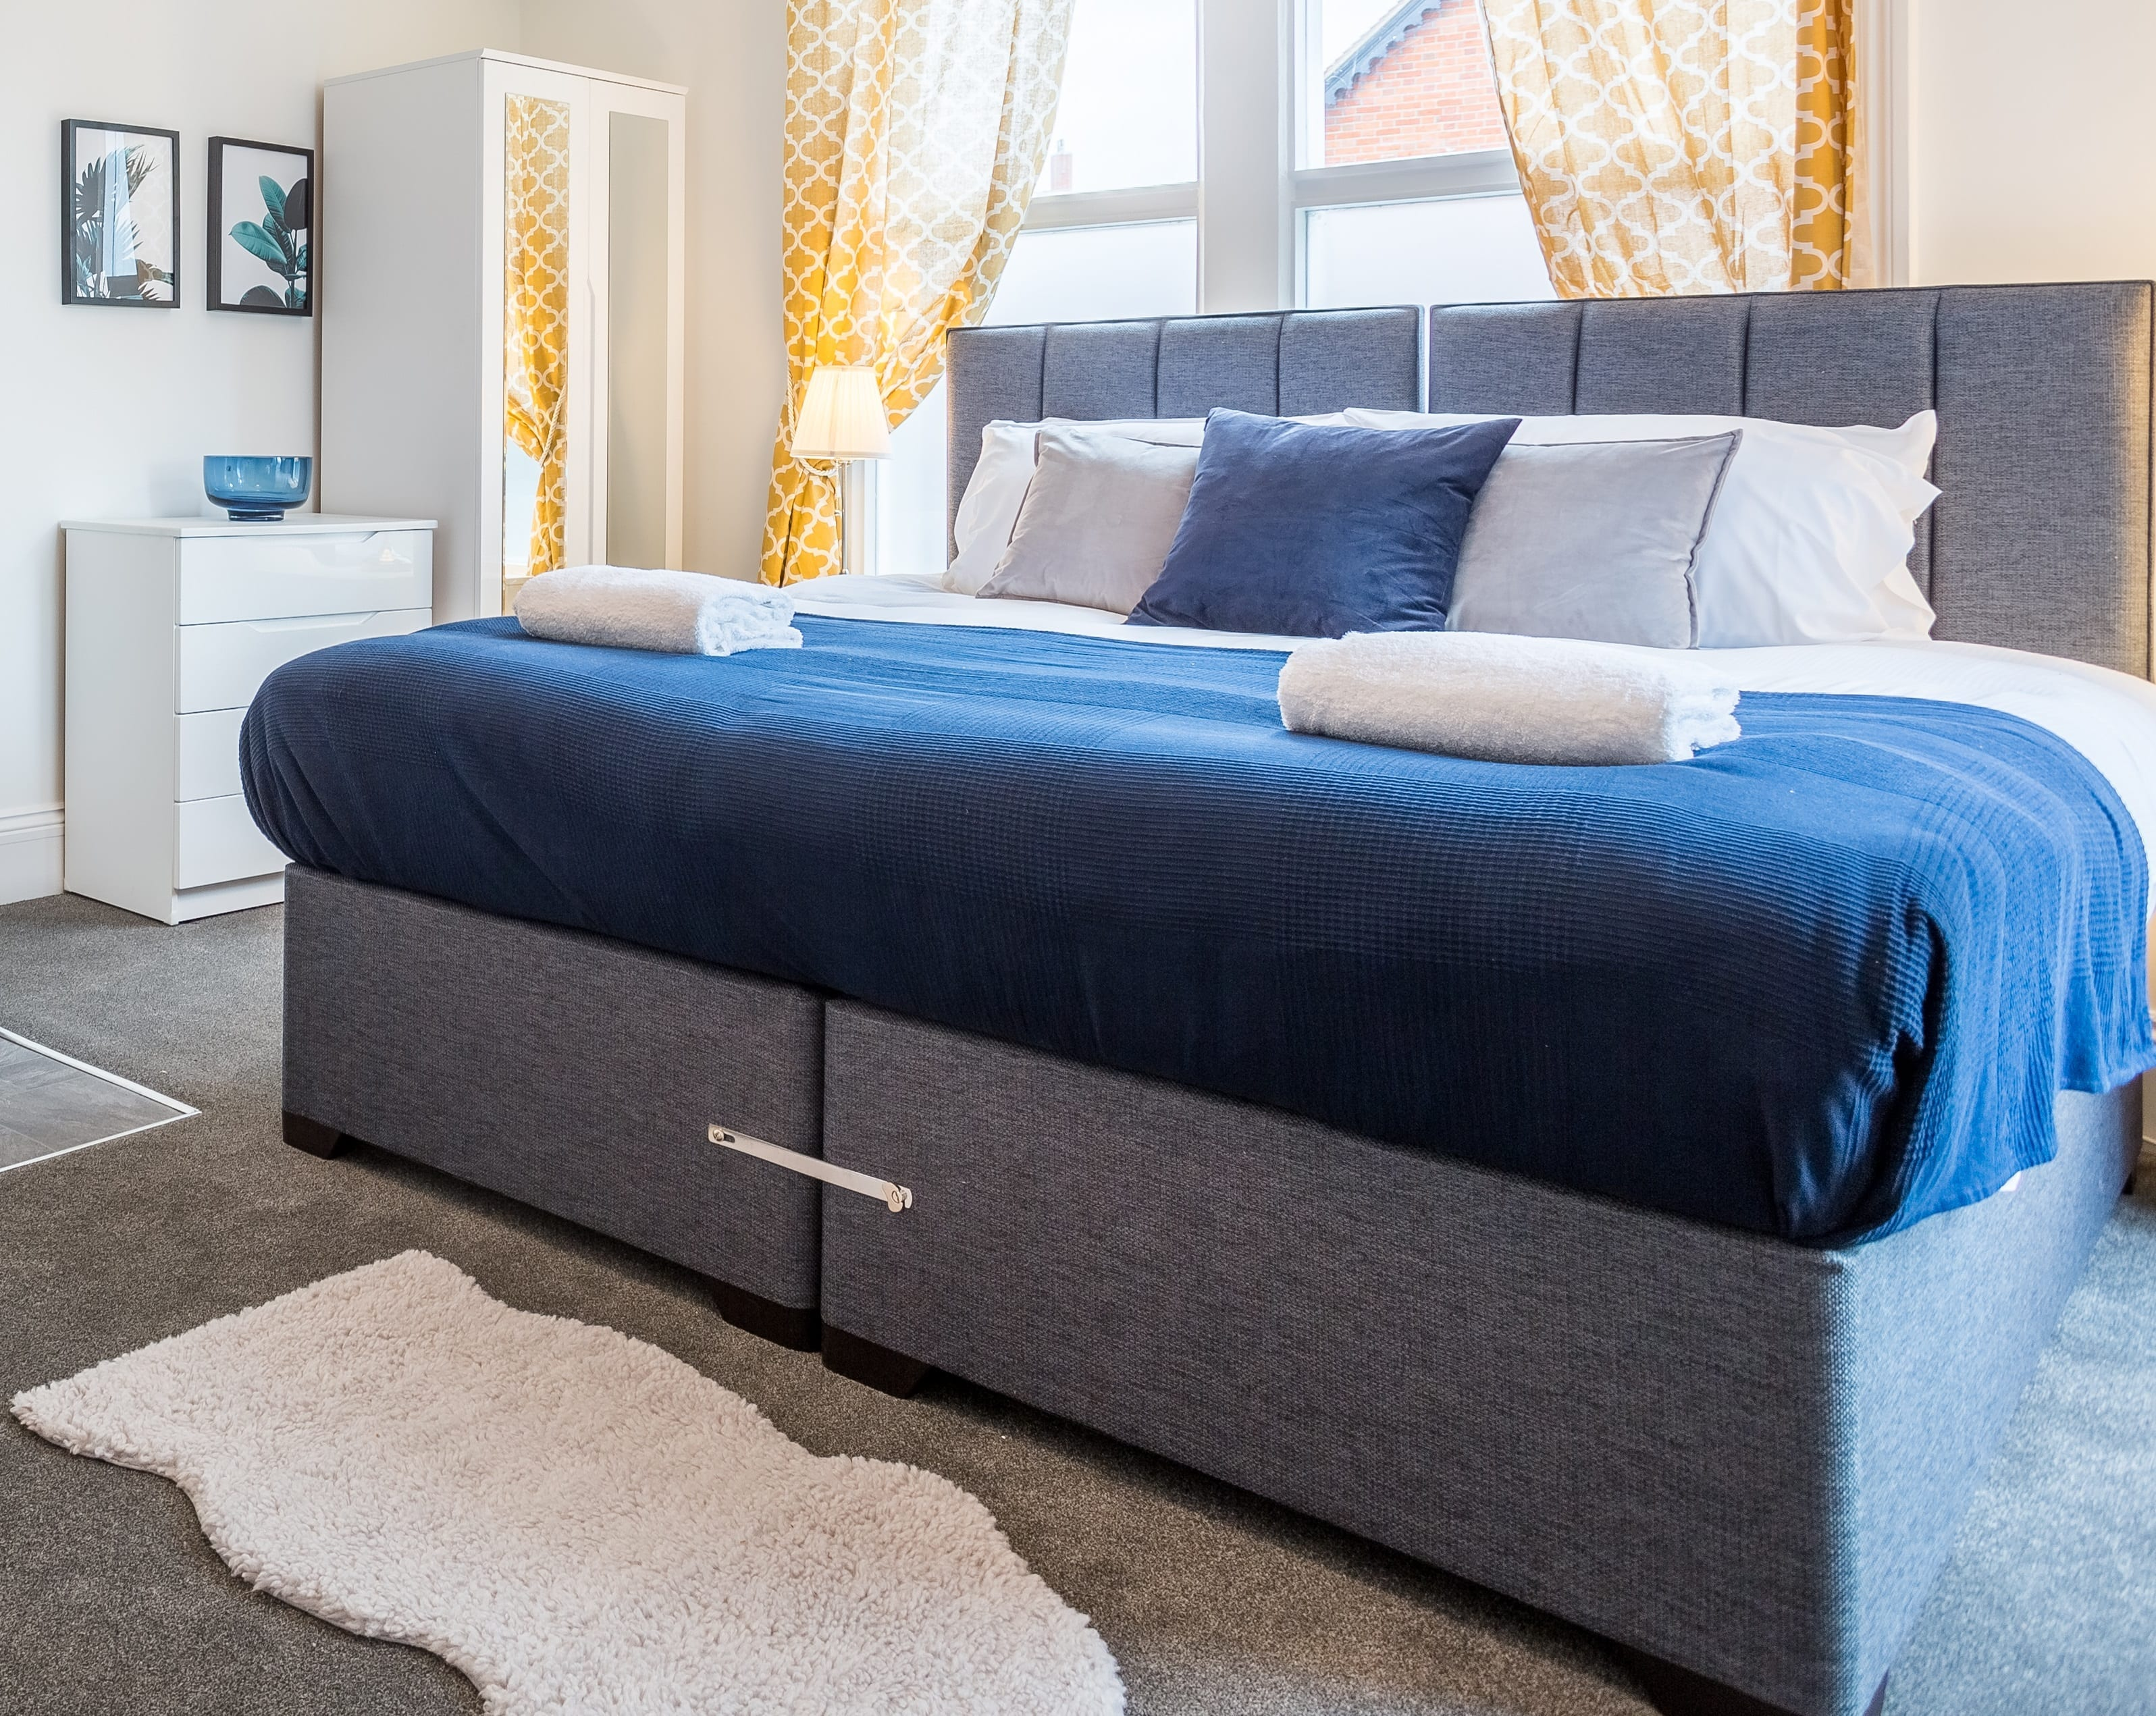 Picture of: Aamira Zip Link Bed With Headboard Let Us Furnish